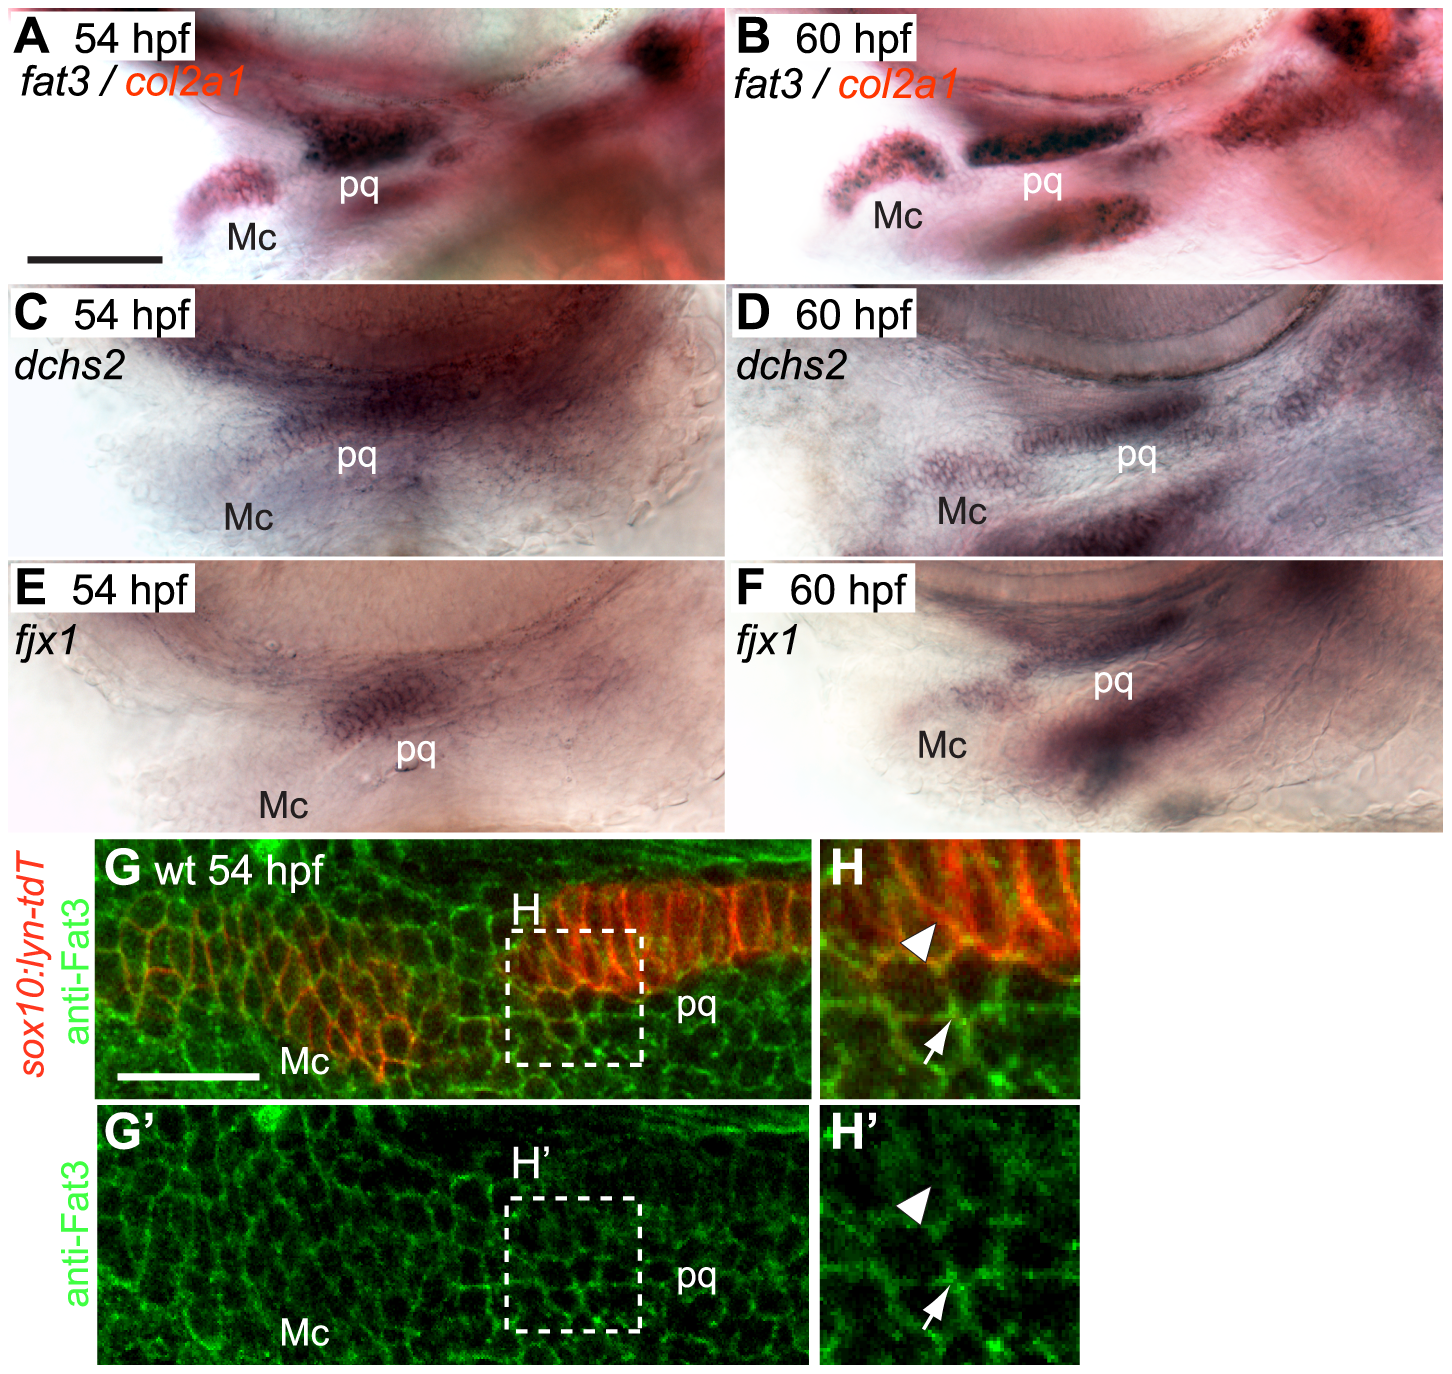 <i>fat3</i>, <i>dchs2</i> and <i>fjx1</i> are expressed in cartilage precursors.